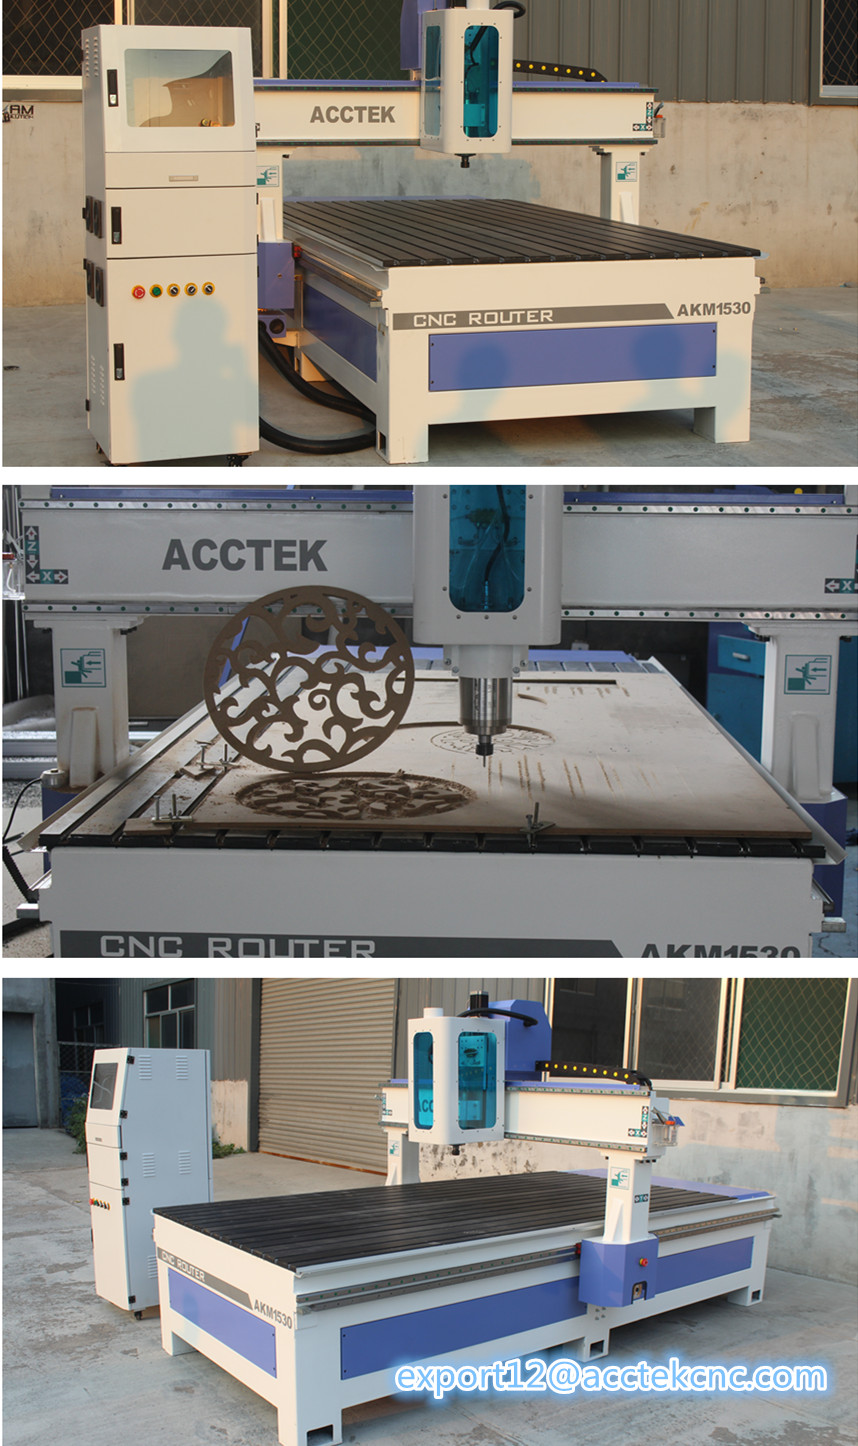 US $5150 0 |Mach3 cnc machine for cabinets/ Artcam Type3 software wood  working cnc machine-in Wood Routers from Tools on Aliexpress com | Alibaba